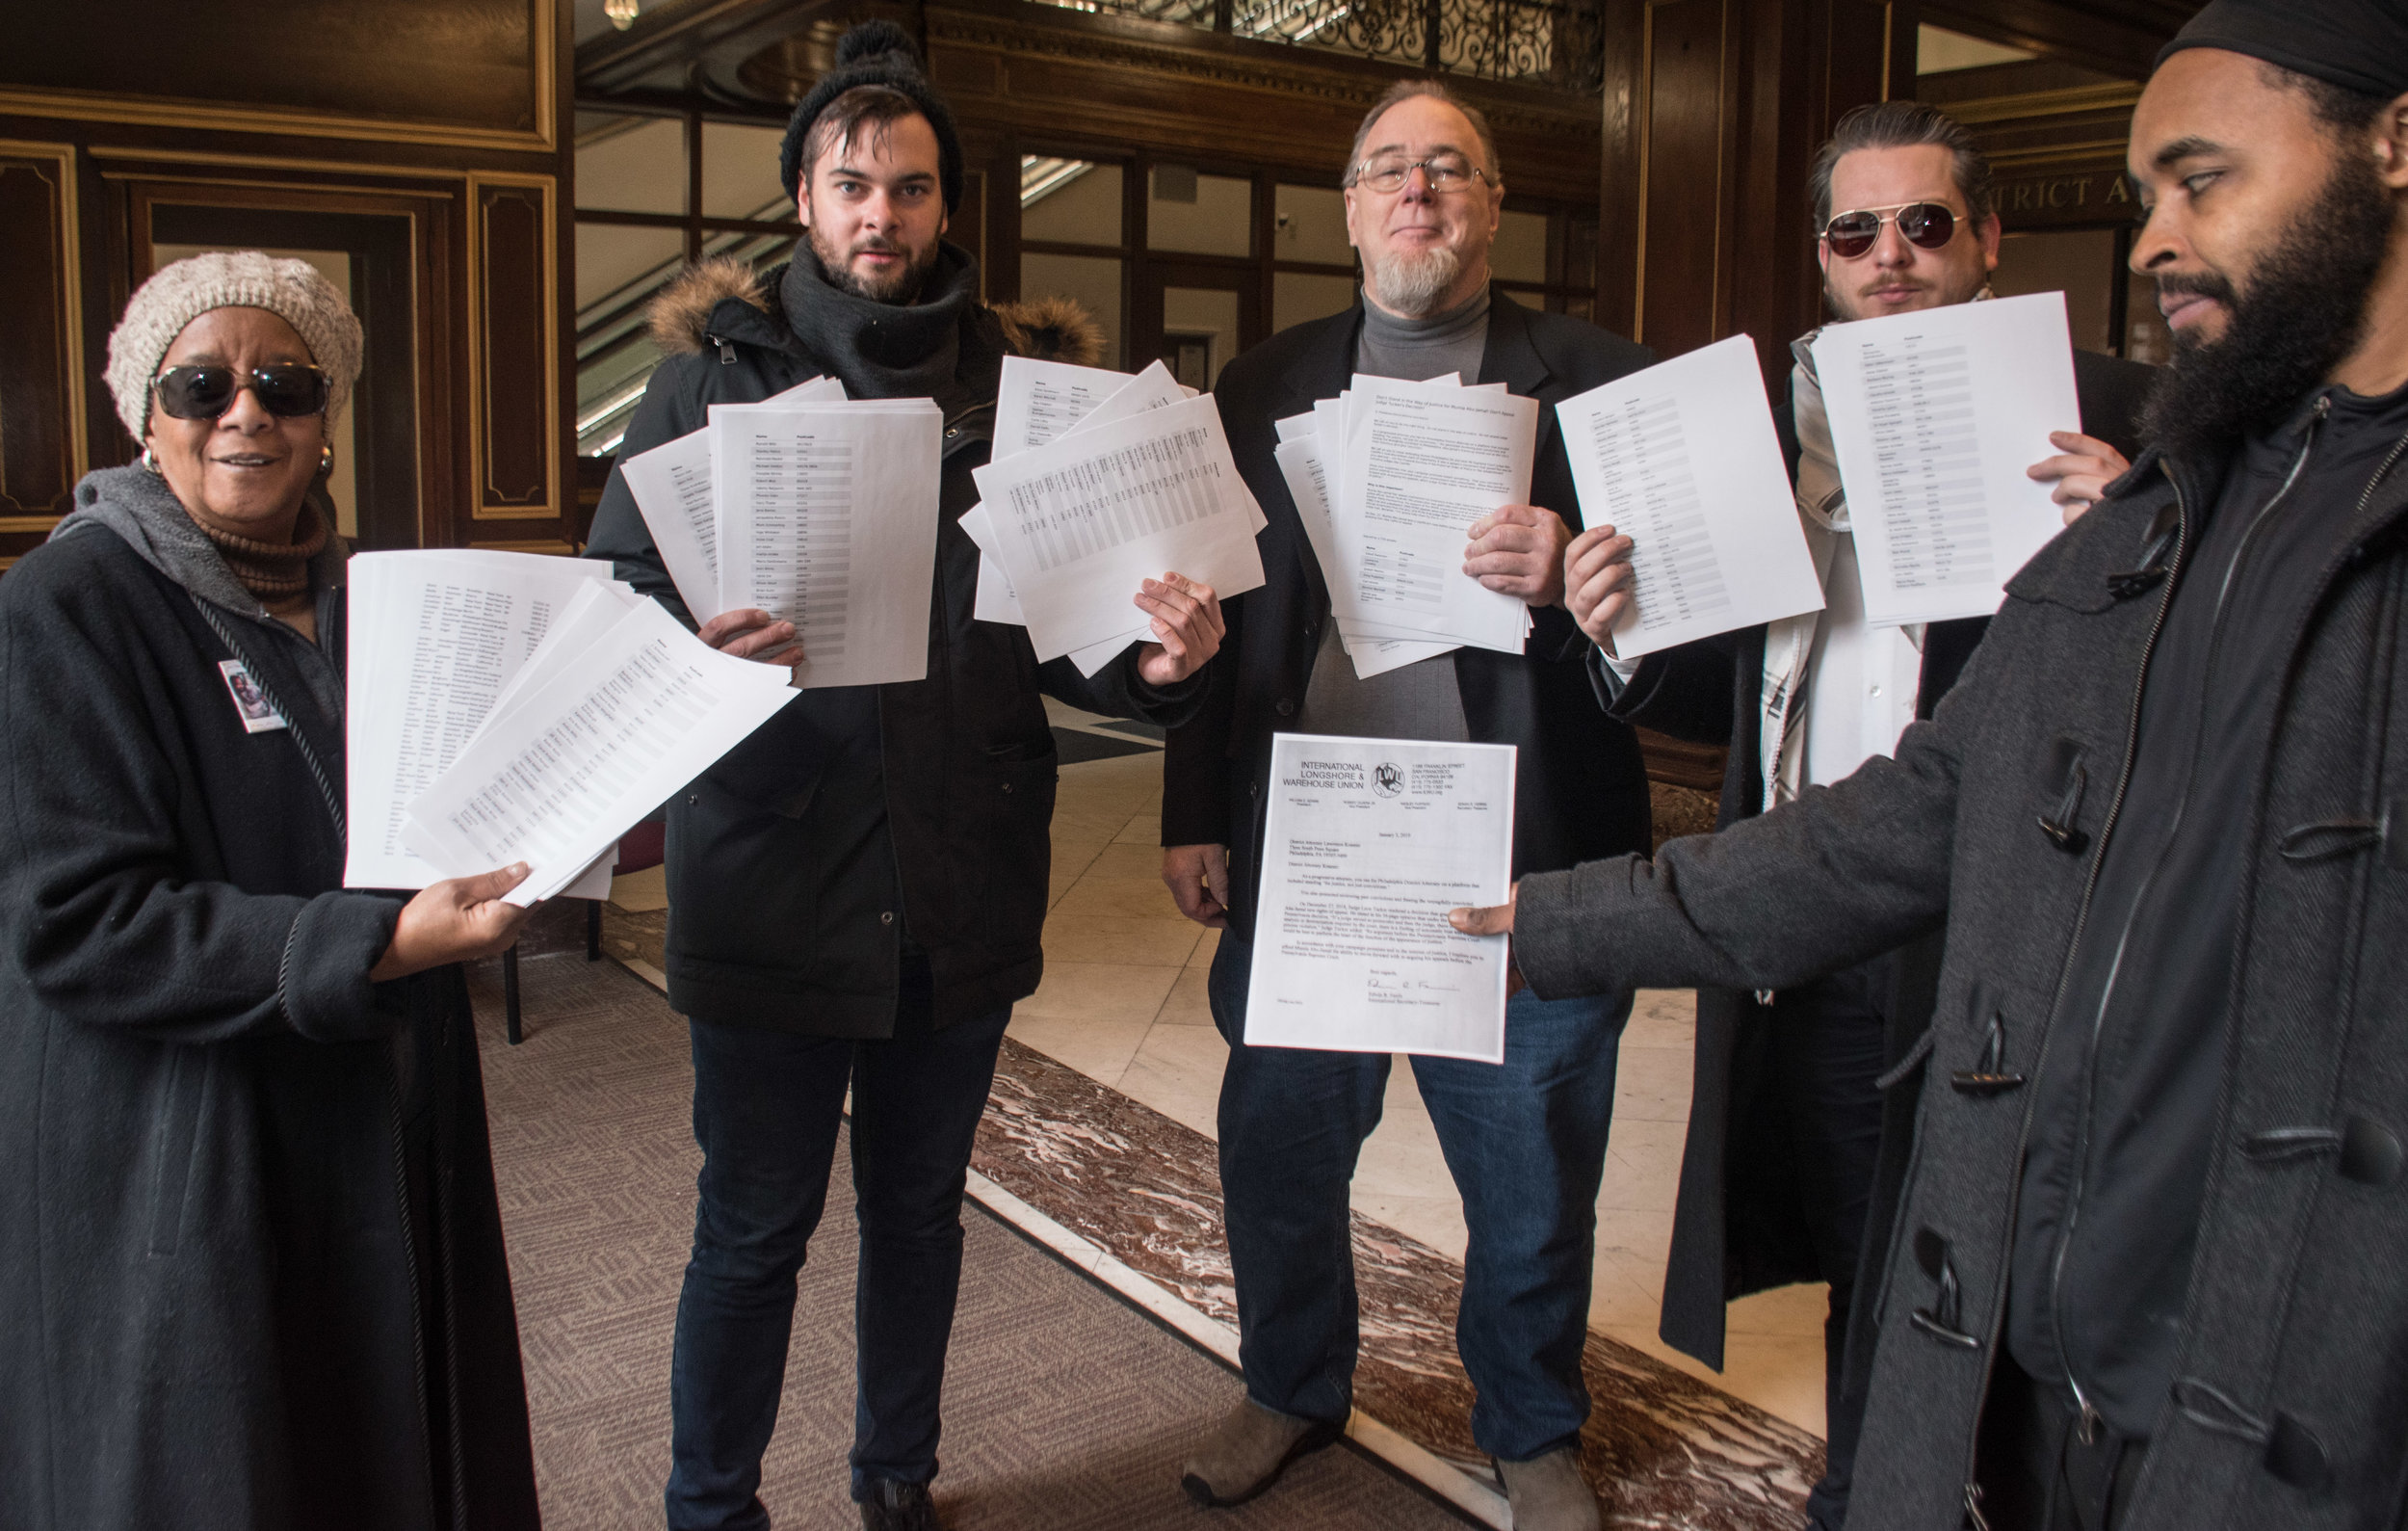 Jan 7, 2019 Thousands of Mumia Abu-Jamal Petitions delivered to DA Krasner  L to R: Linda Ragin, Scott Williams, John Kirkland, Ted Kelly, Wayne Cook